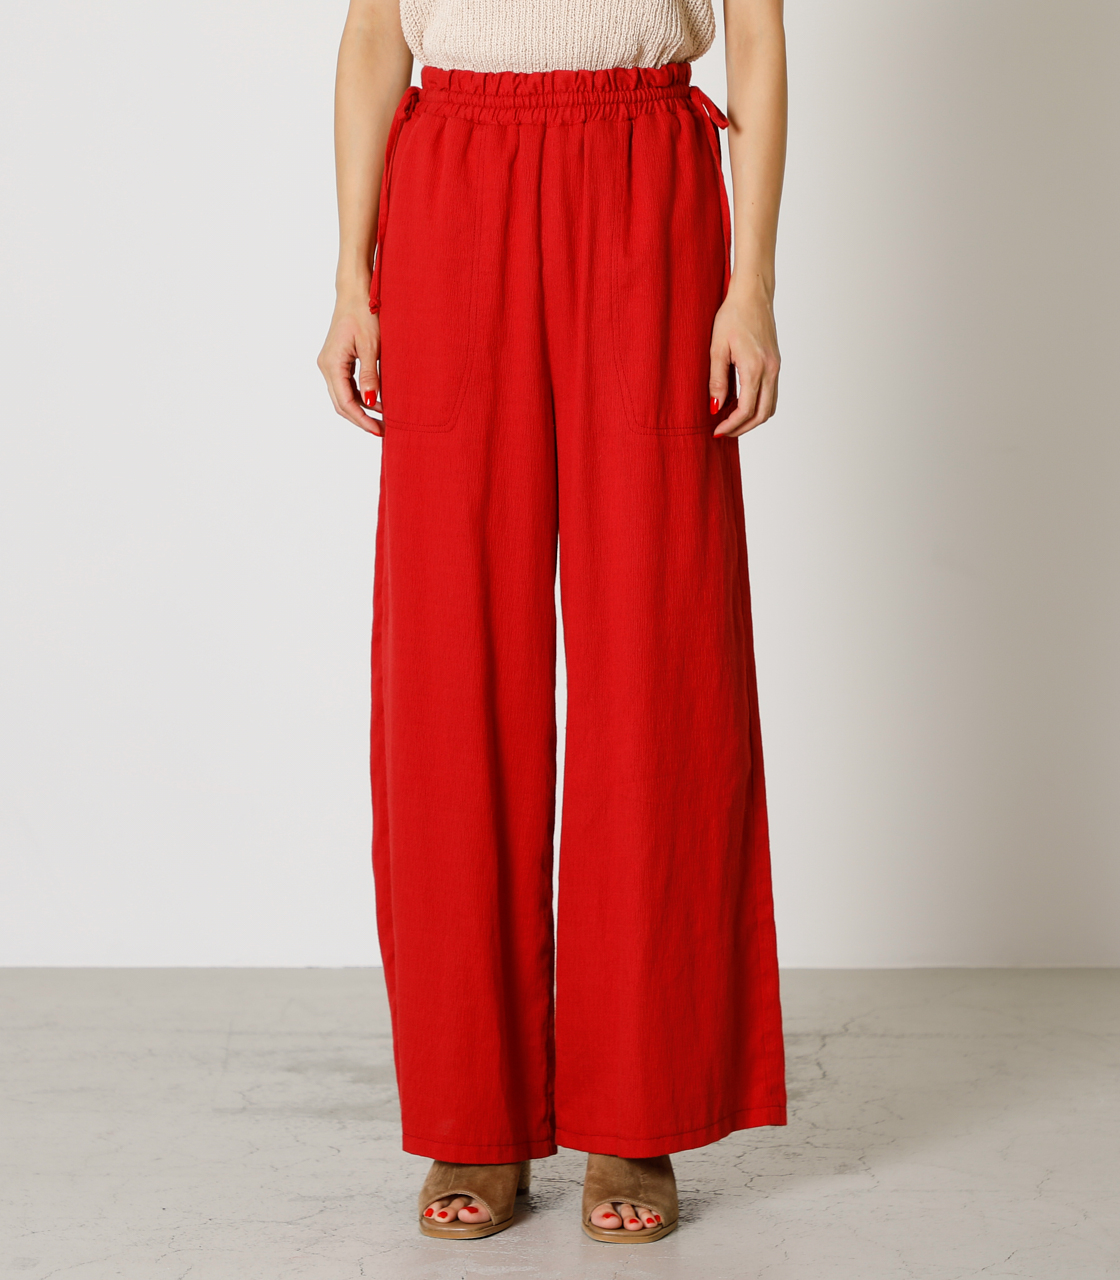 LINEN TOUCH LOOSE PANTS/リネンタッチルーズパンツ 詳細画像 RED 4